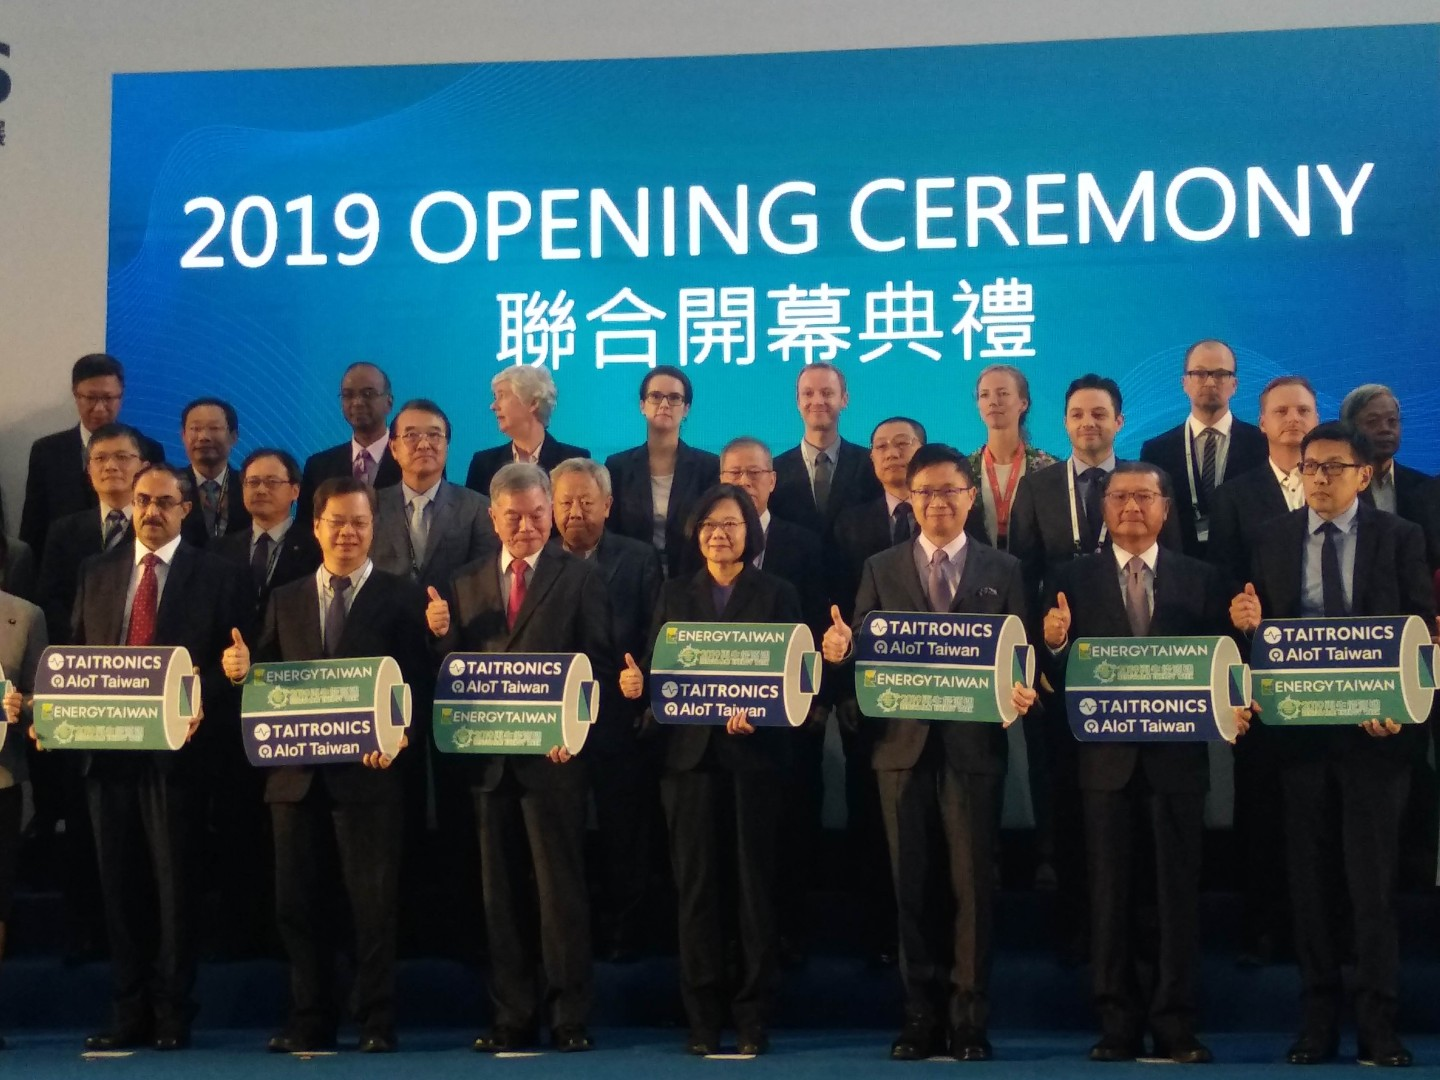 Taiwanese president Tsai Ing-wen (centre front row) said at the event that the island's energy system saw a